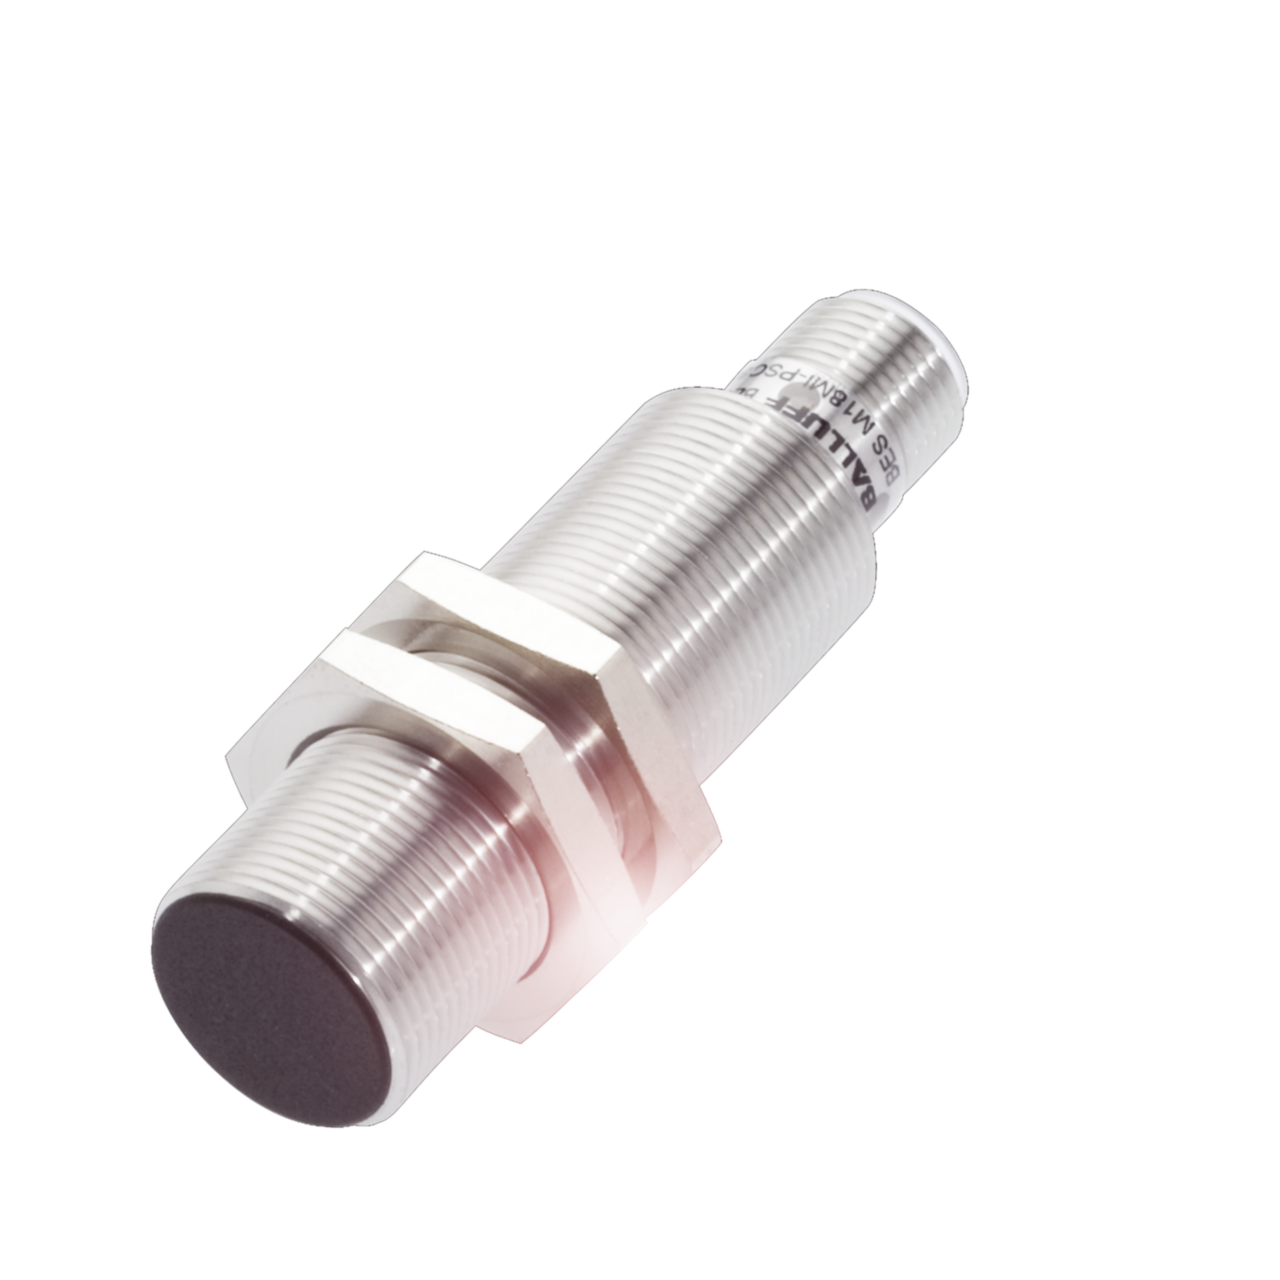 BES008L-BES M18MI-PSC80B-S04G Inductive Standard Sensors with Preferred Types